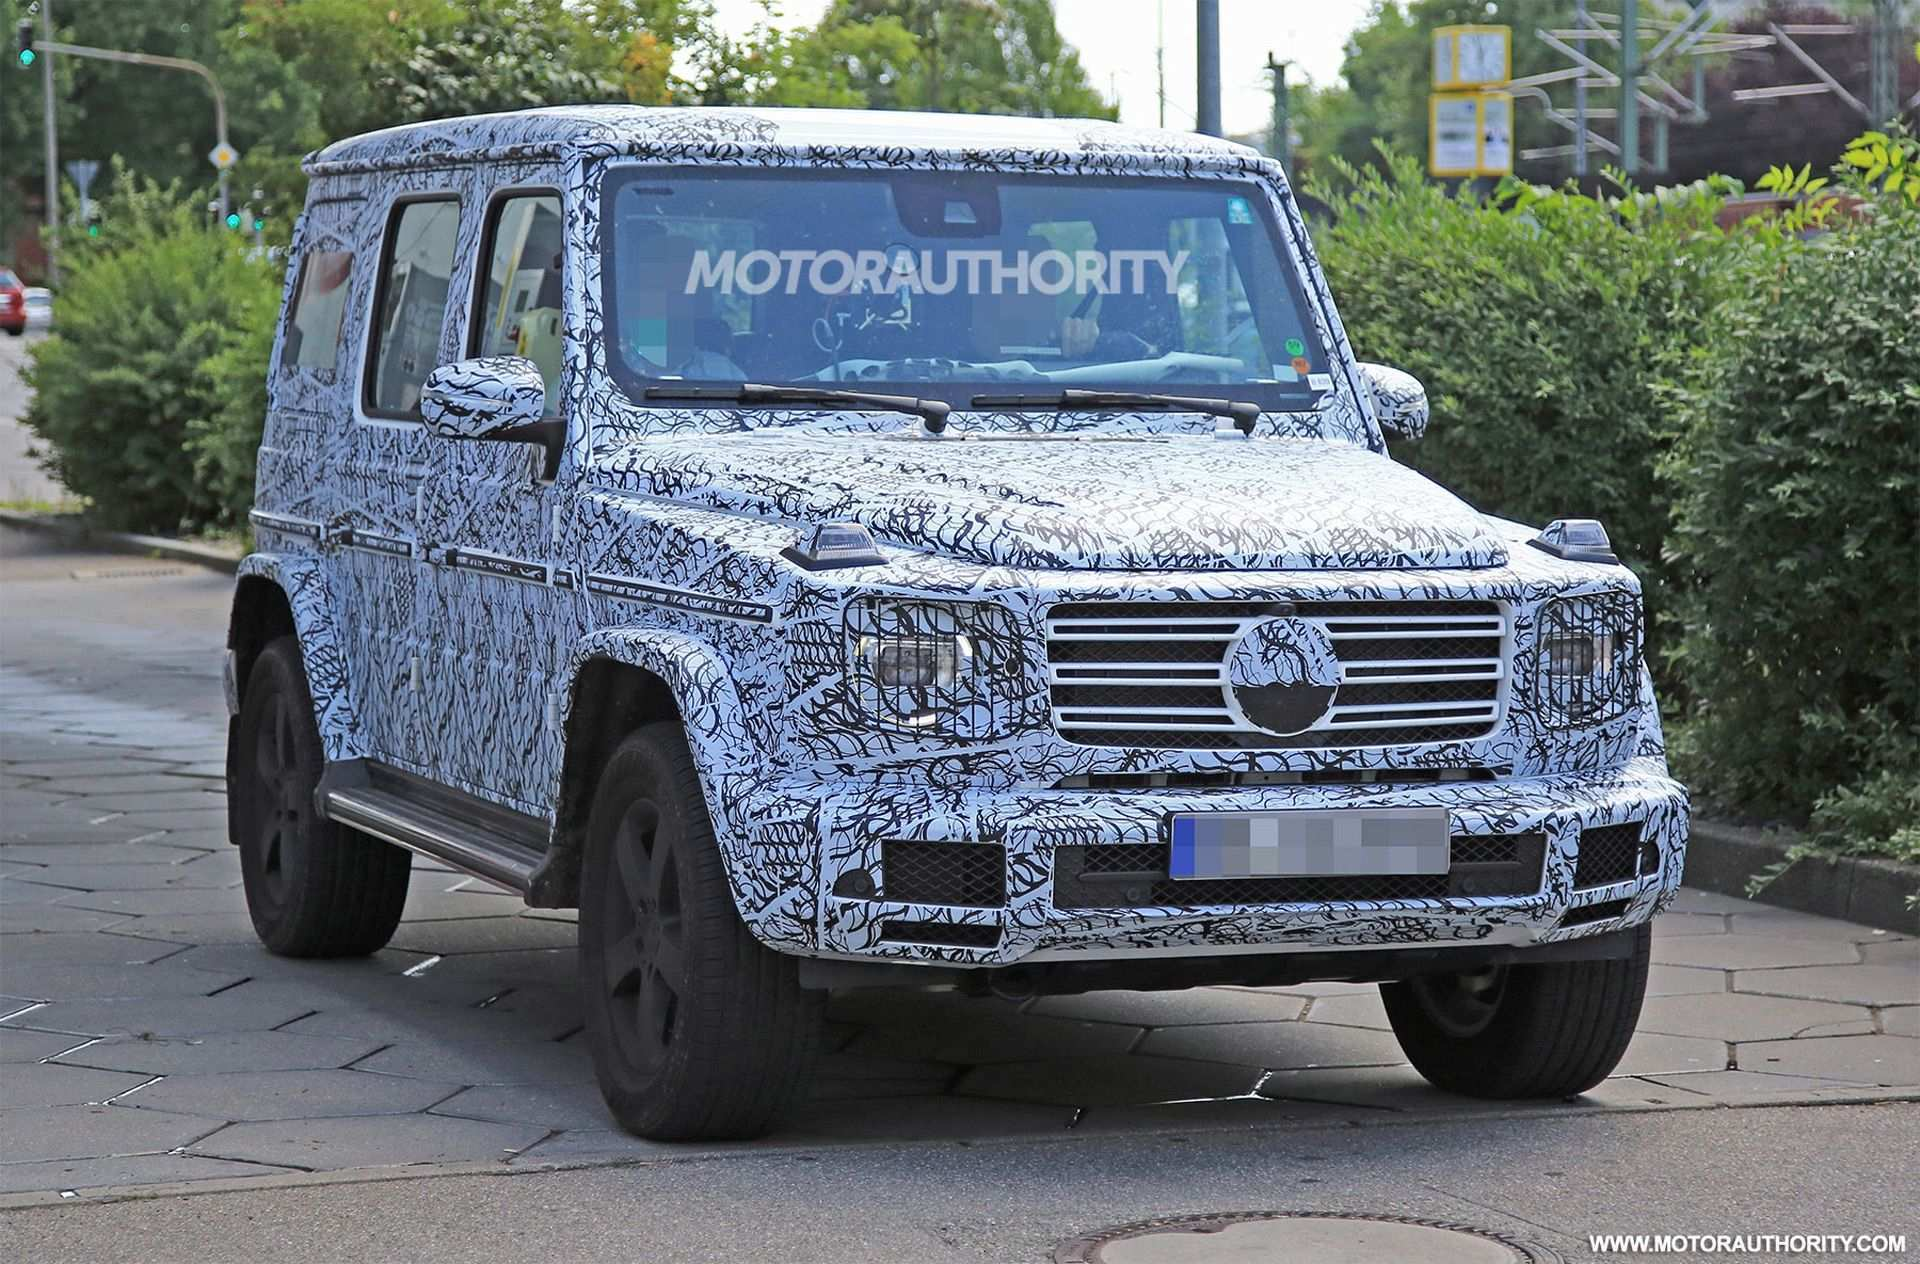 65 New Mercedes G 2020 Exterior Date New Concept with Mercedes G 2020 Exterior Date